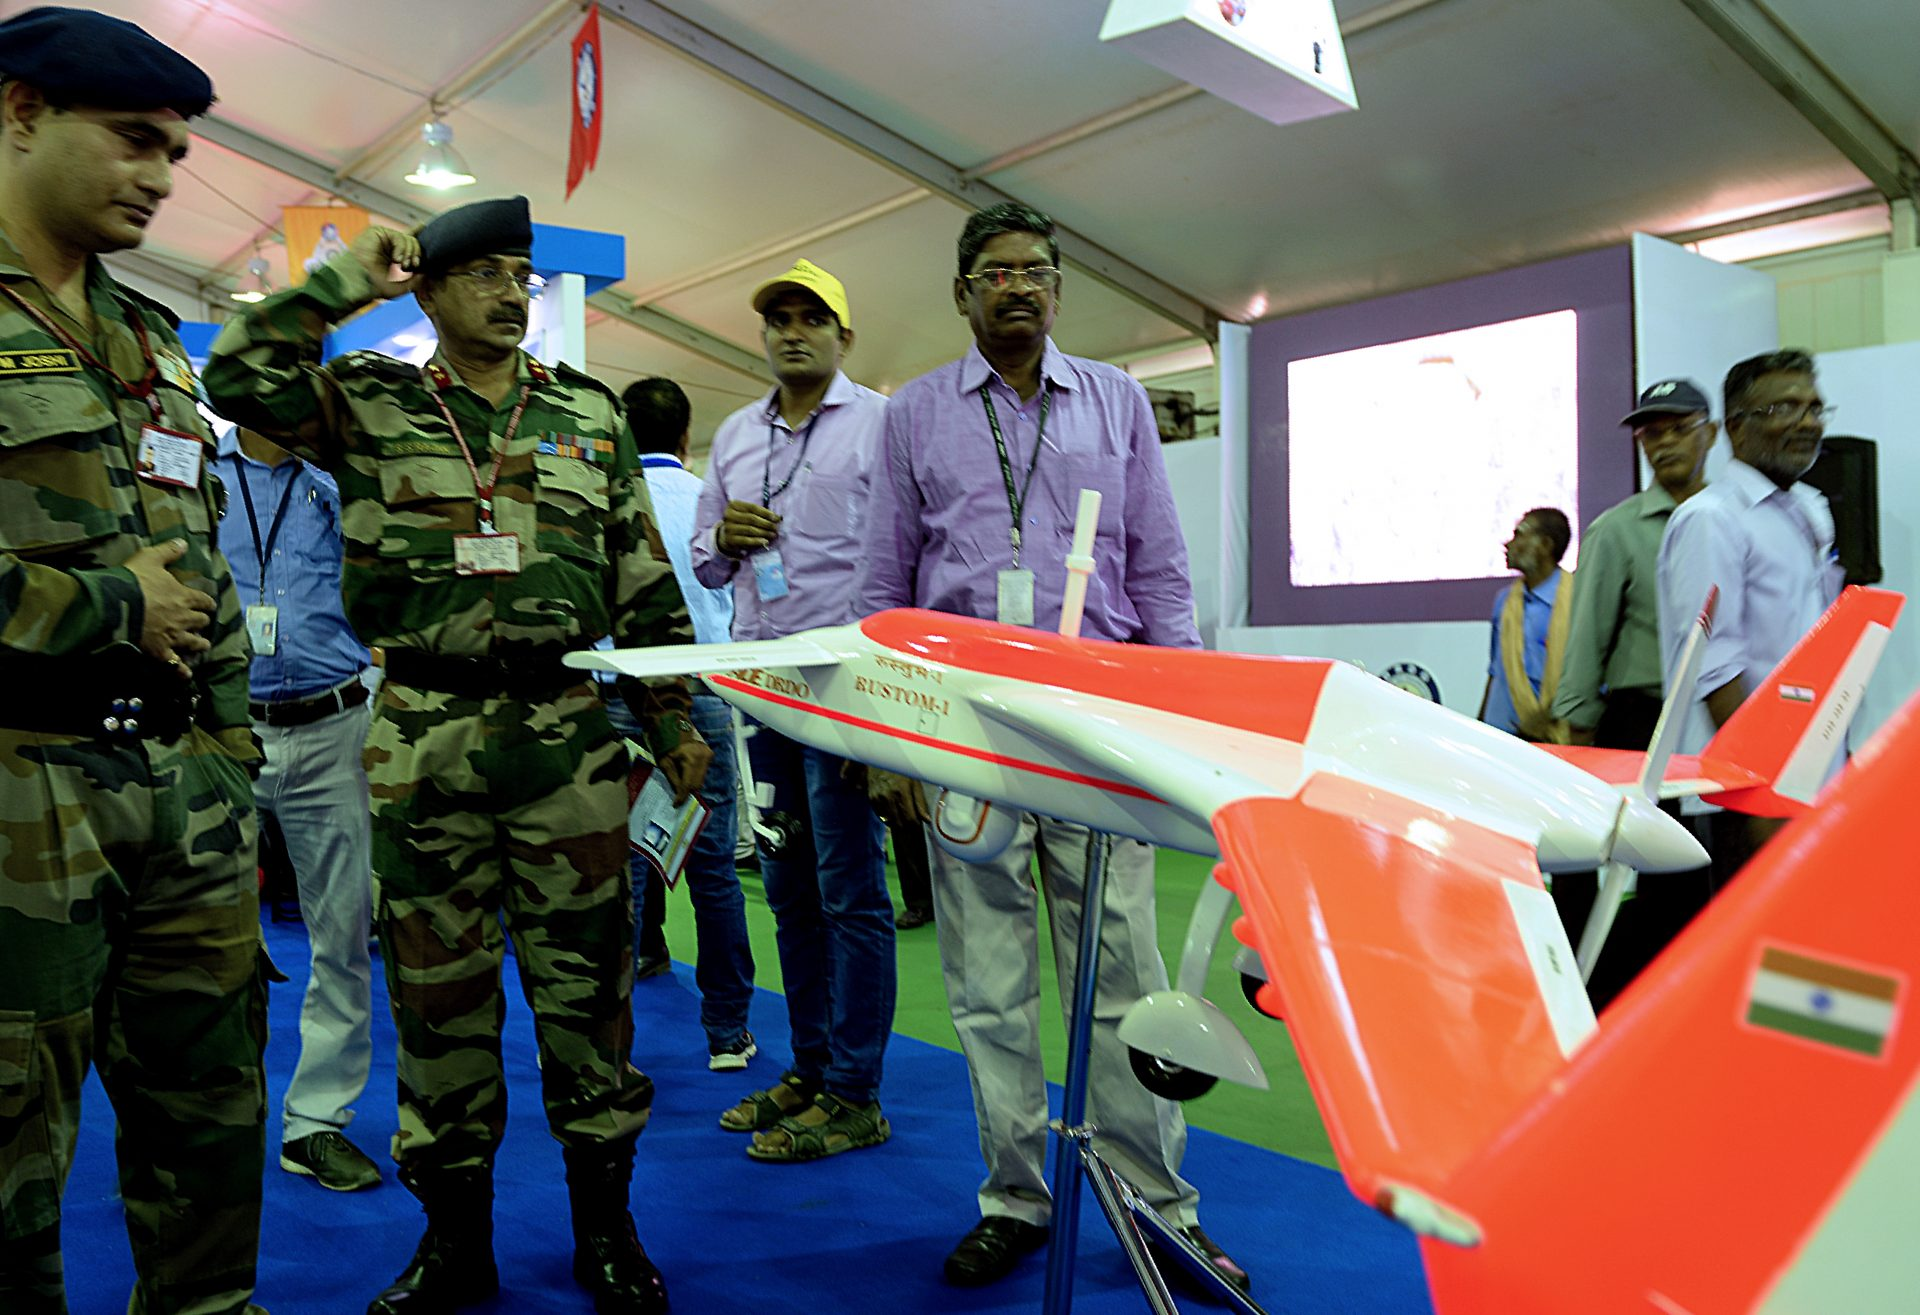 Des soldats de l'armée indienne face à un drone Rustom-1 lors d'un salon de la Defence Research and Development organisation (DRDO), en souvenir de l'ancien président indien APJ Abdul Kalam, à Chennai le 28 juillet 2017. (Crédits : AFP PHOTO / ARUN SANKAR)